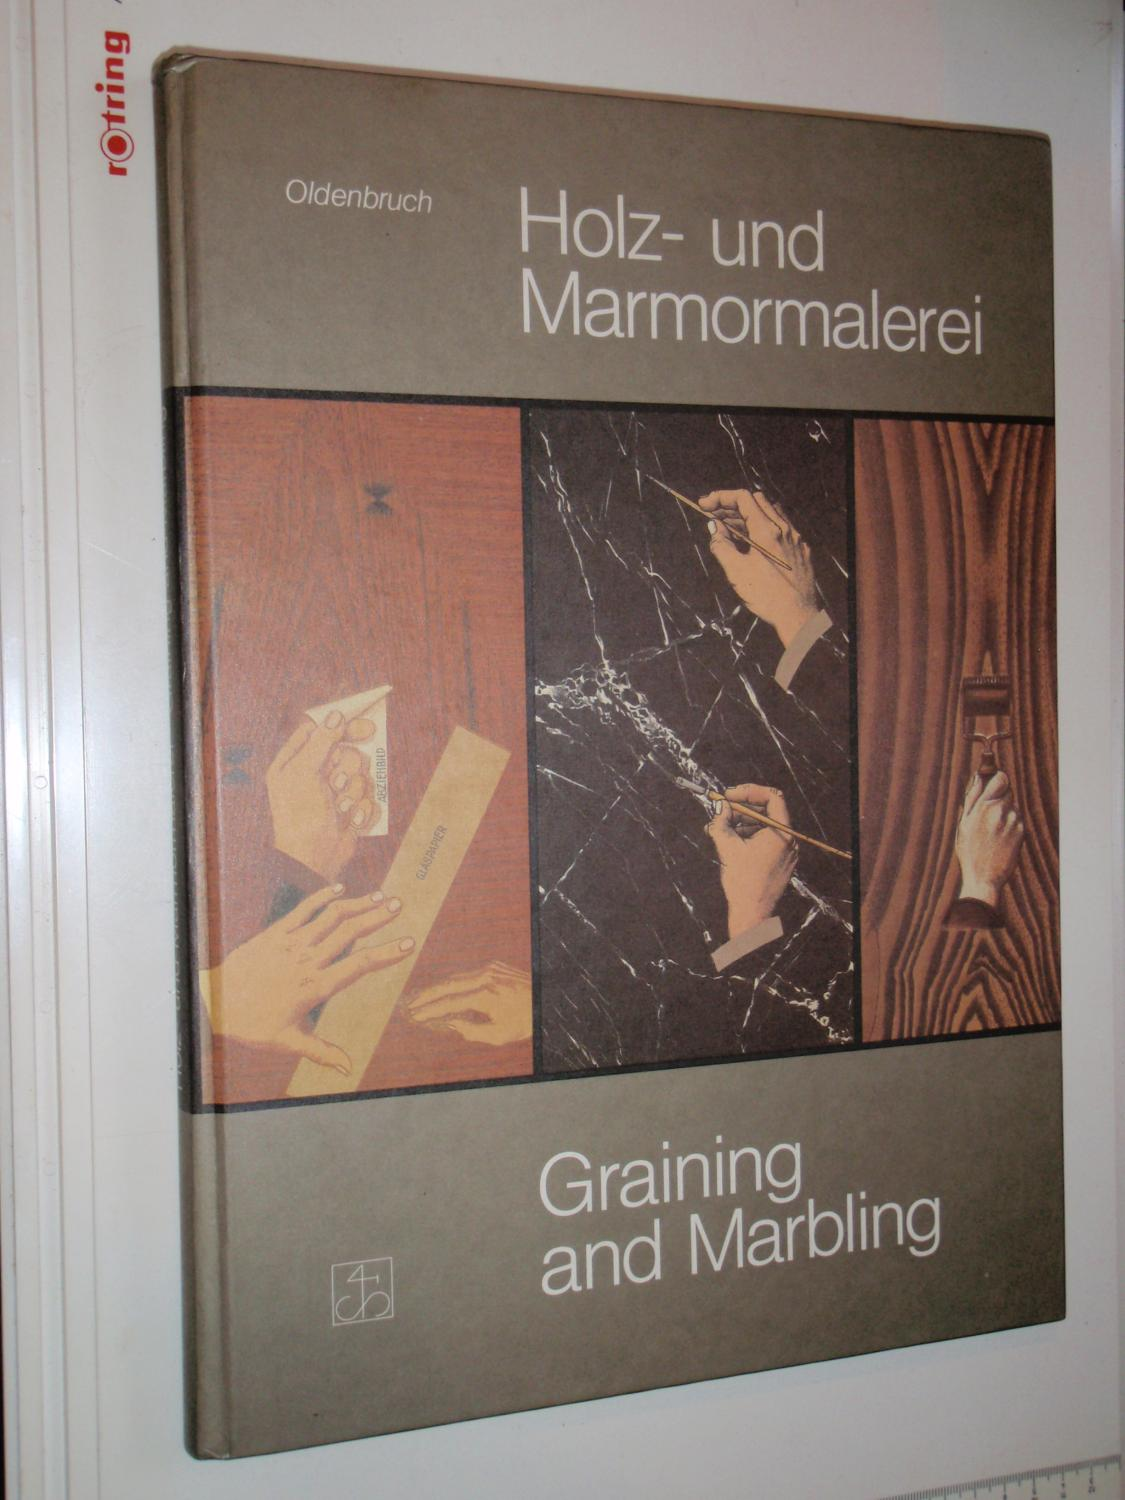 Holz- und Marmormalerei = Graining and marbling (German Edition)